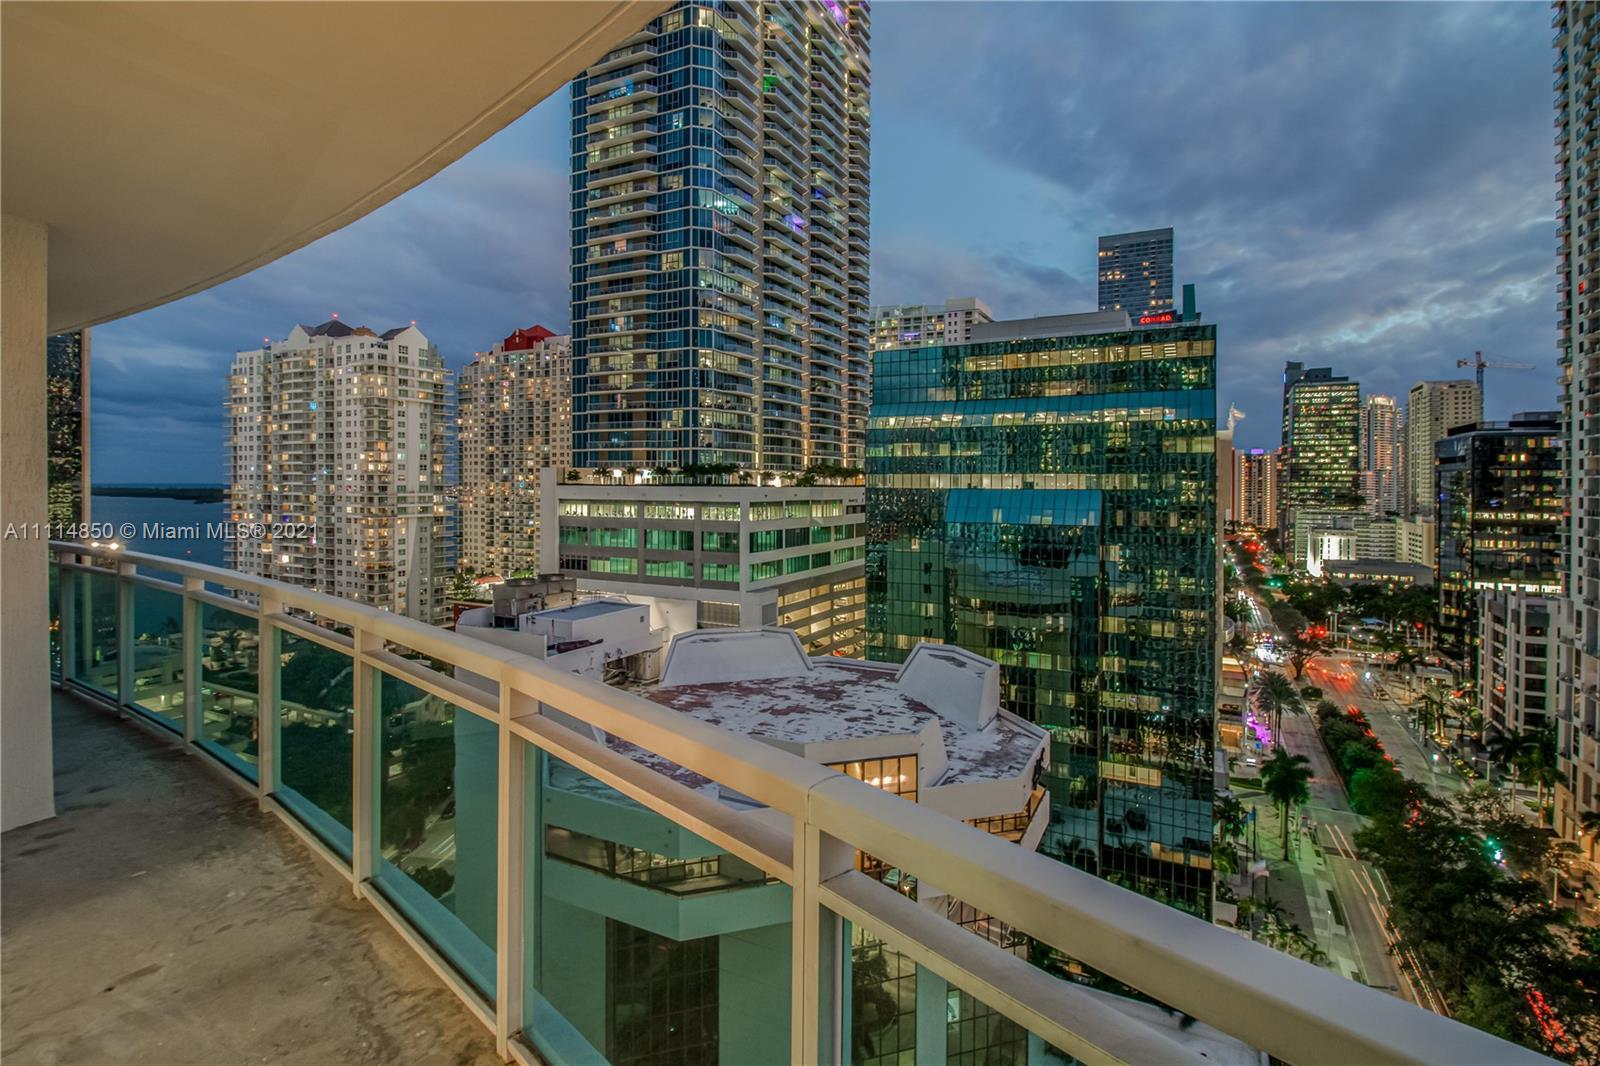 Live Limitlessly in this delightful 19th floor unit at The Plaza Brickell overlooking the Brickell c